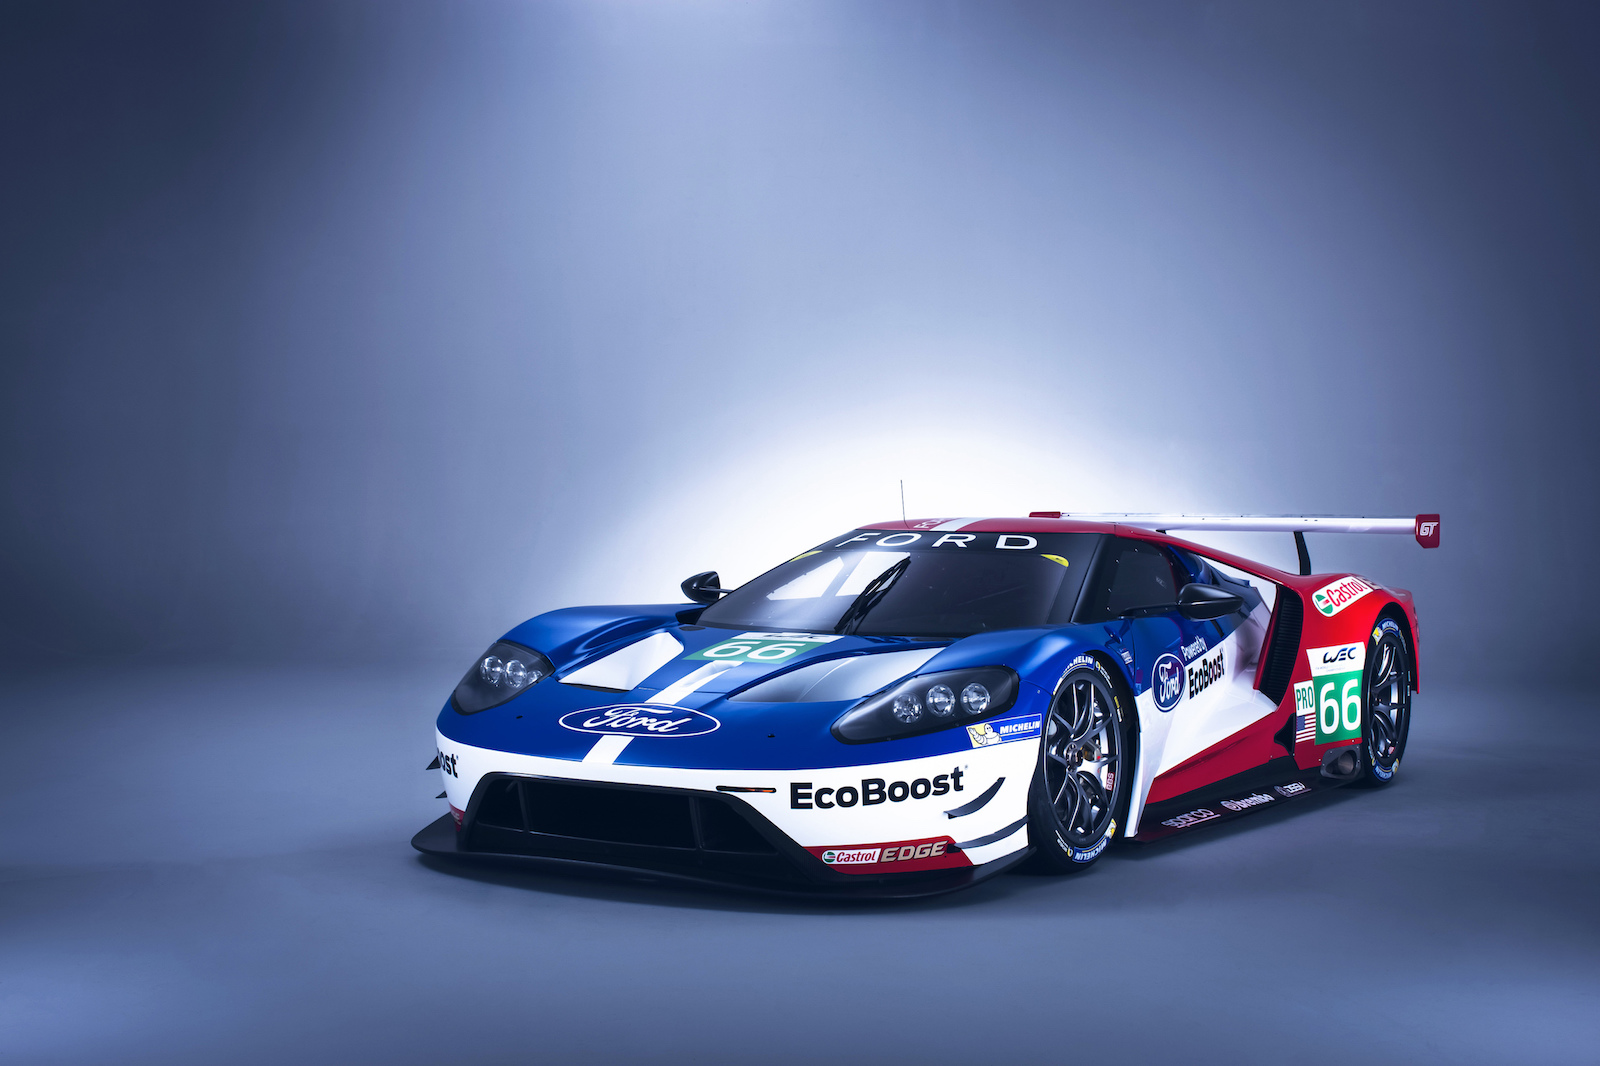 Ford announced its drivers for Le Mans and WEC